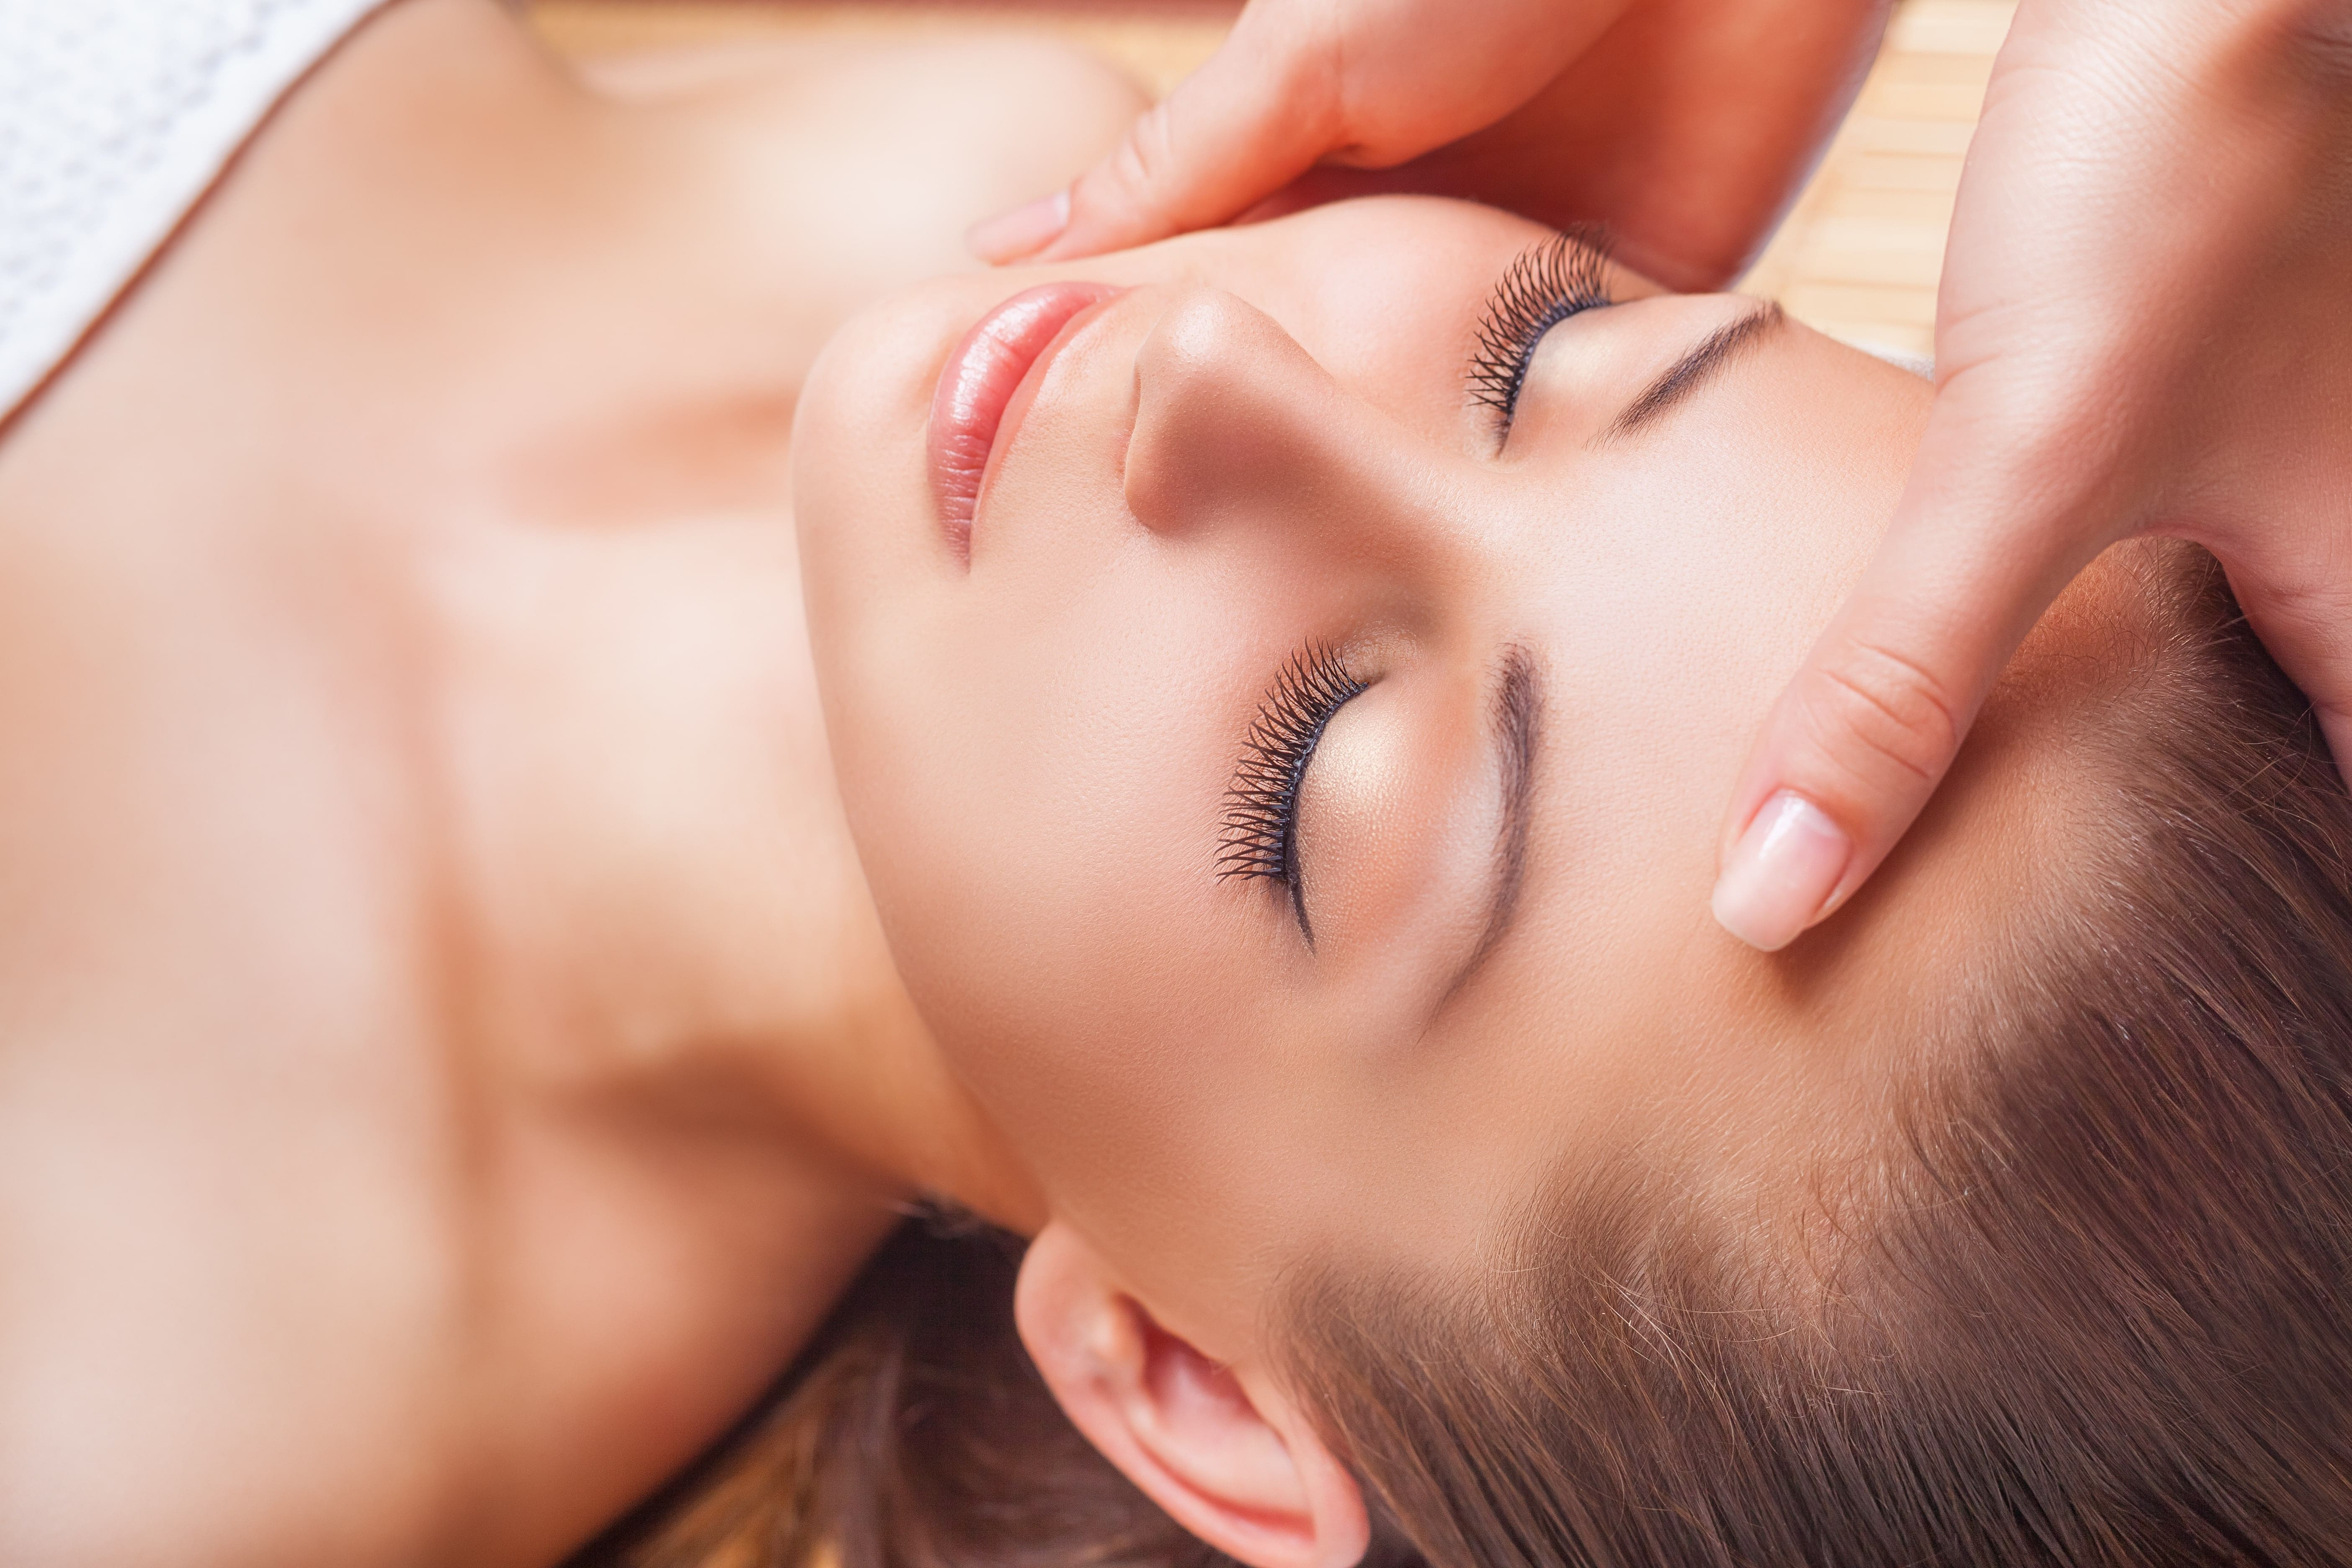 Discover The Best Massages For Migraines